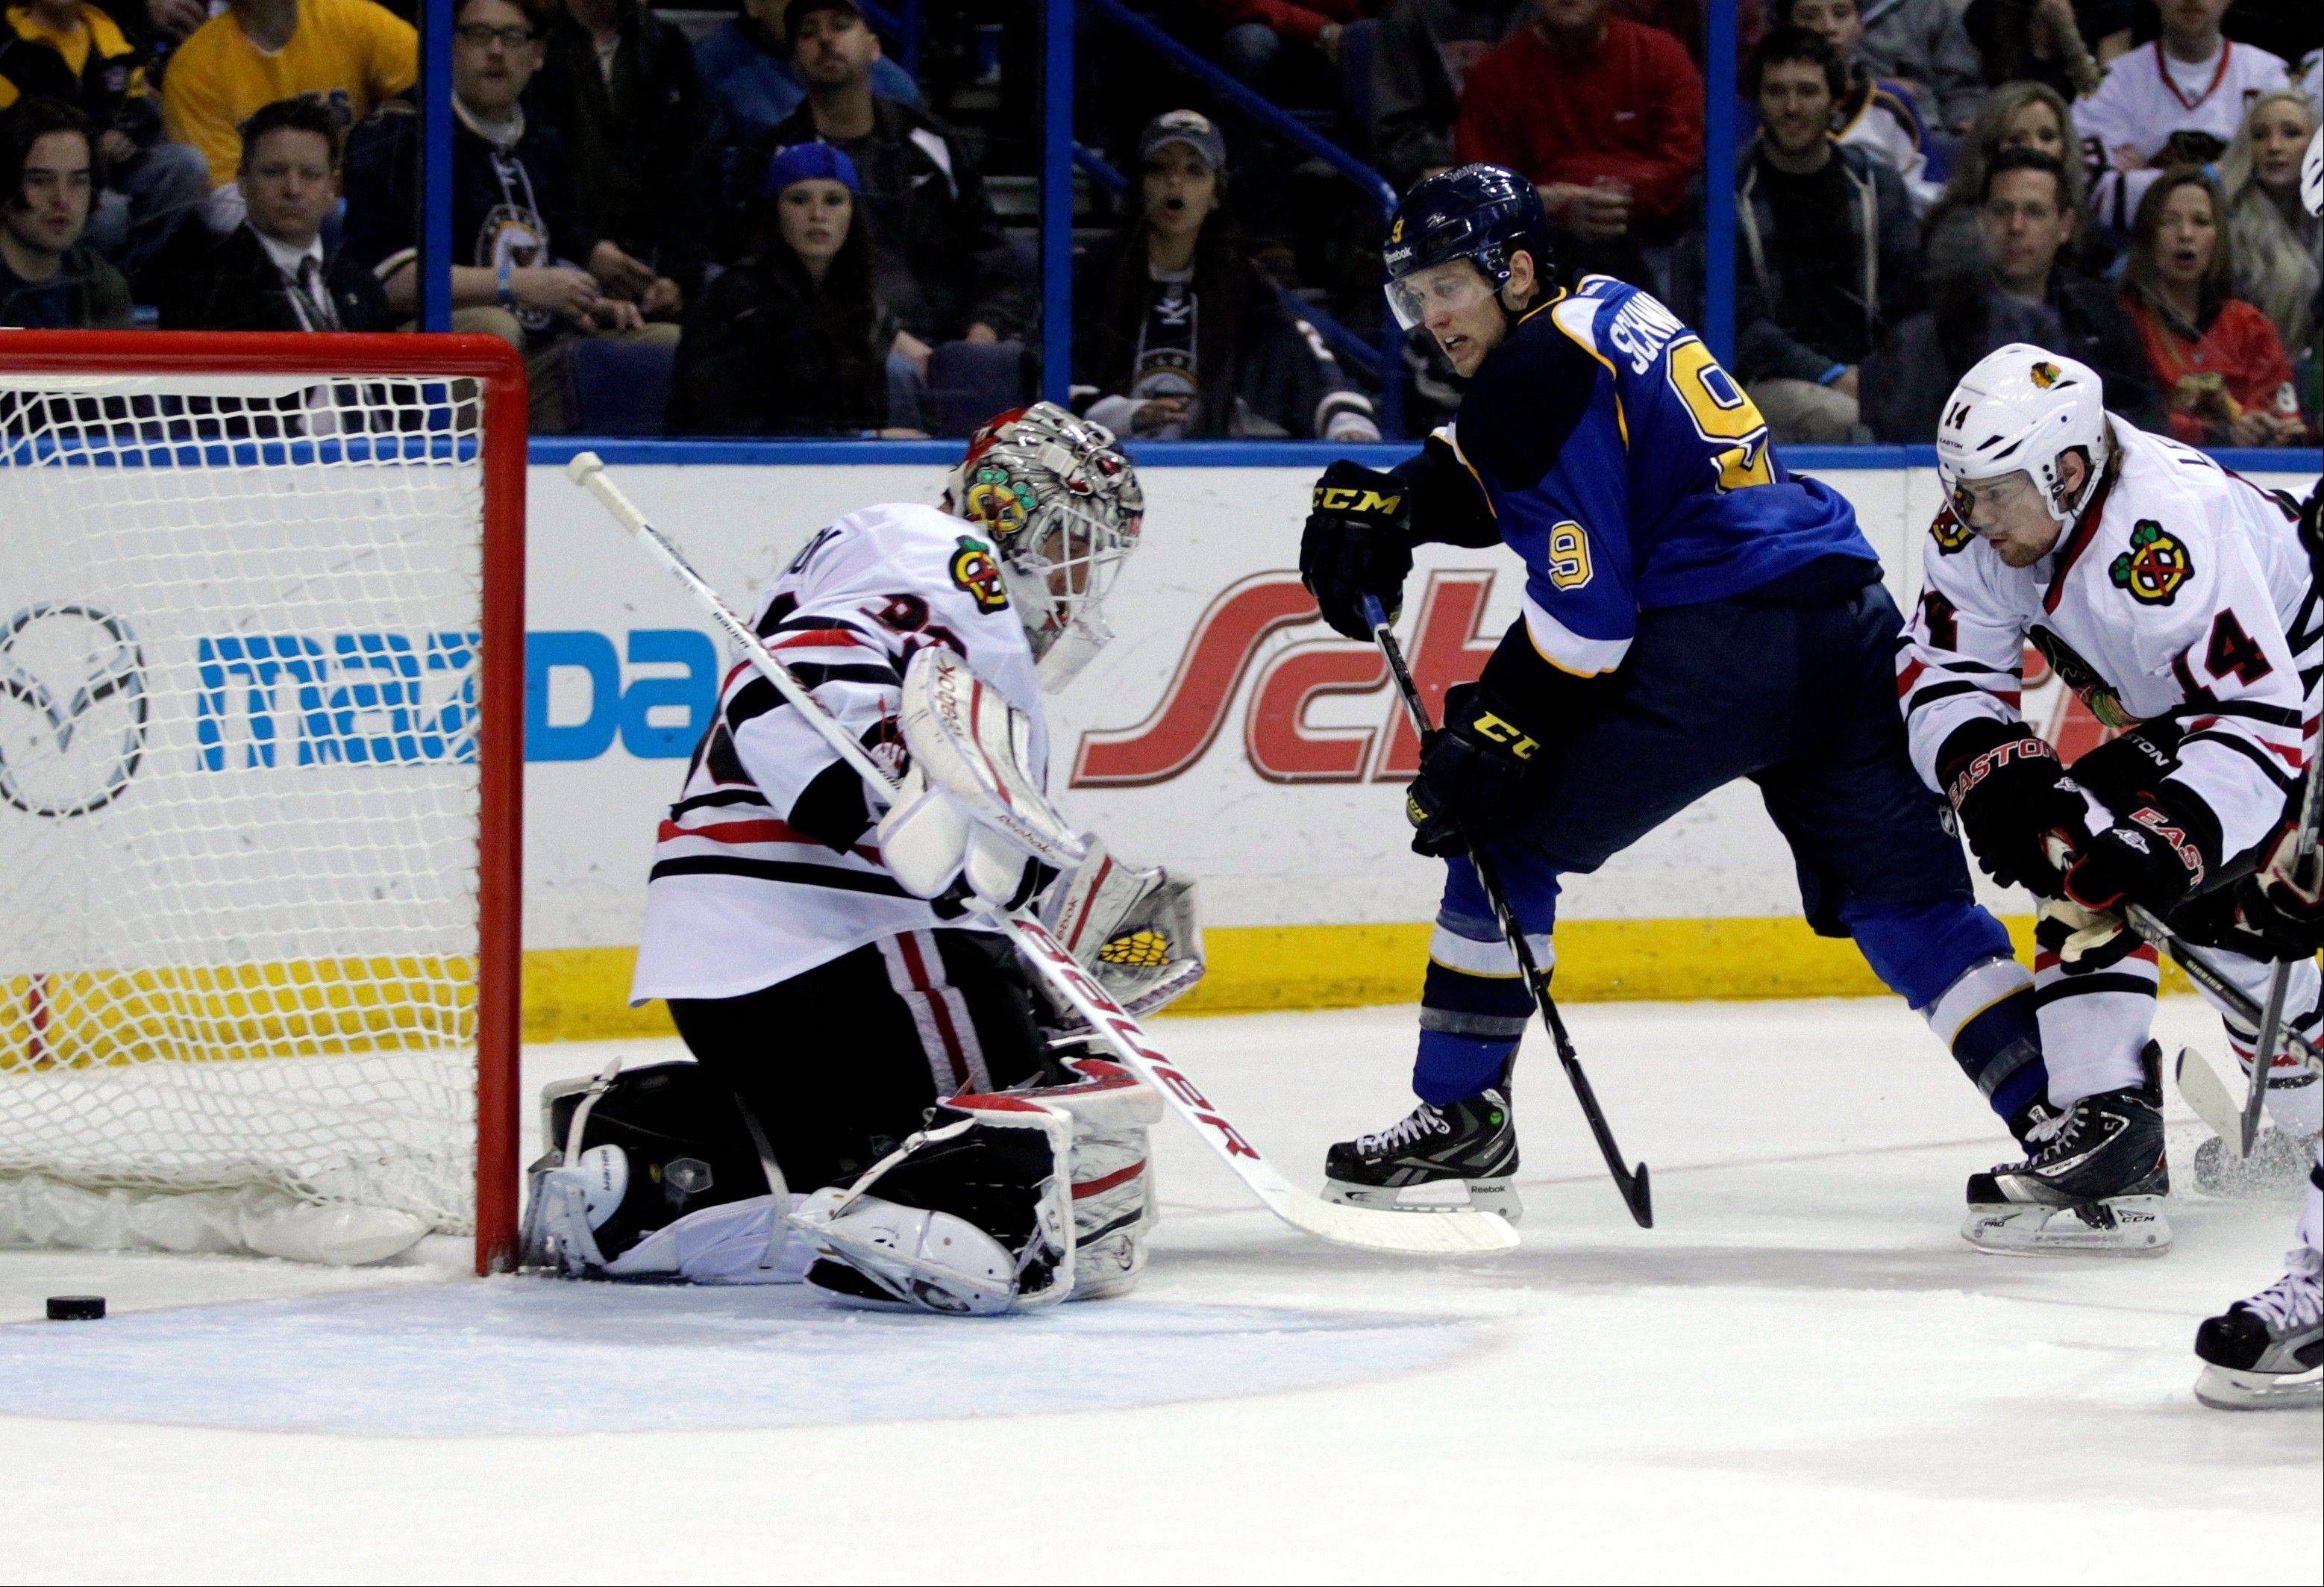 St. Louis Blues� Jaden Schwartz (9) slides the puck past Blackhawks goalie Carter Hutton (33) for his second goal of the game Saturday in St. Louis. The Blackhawks lost 3-1.